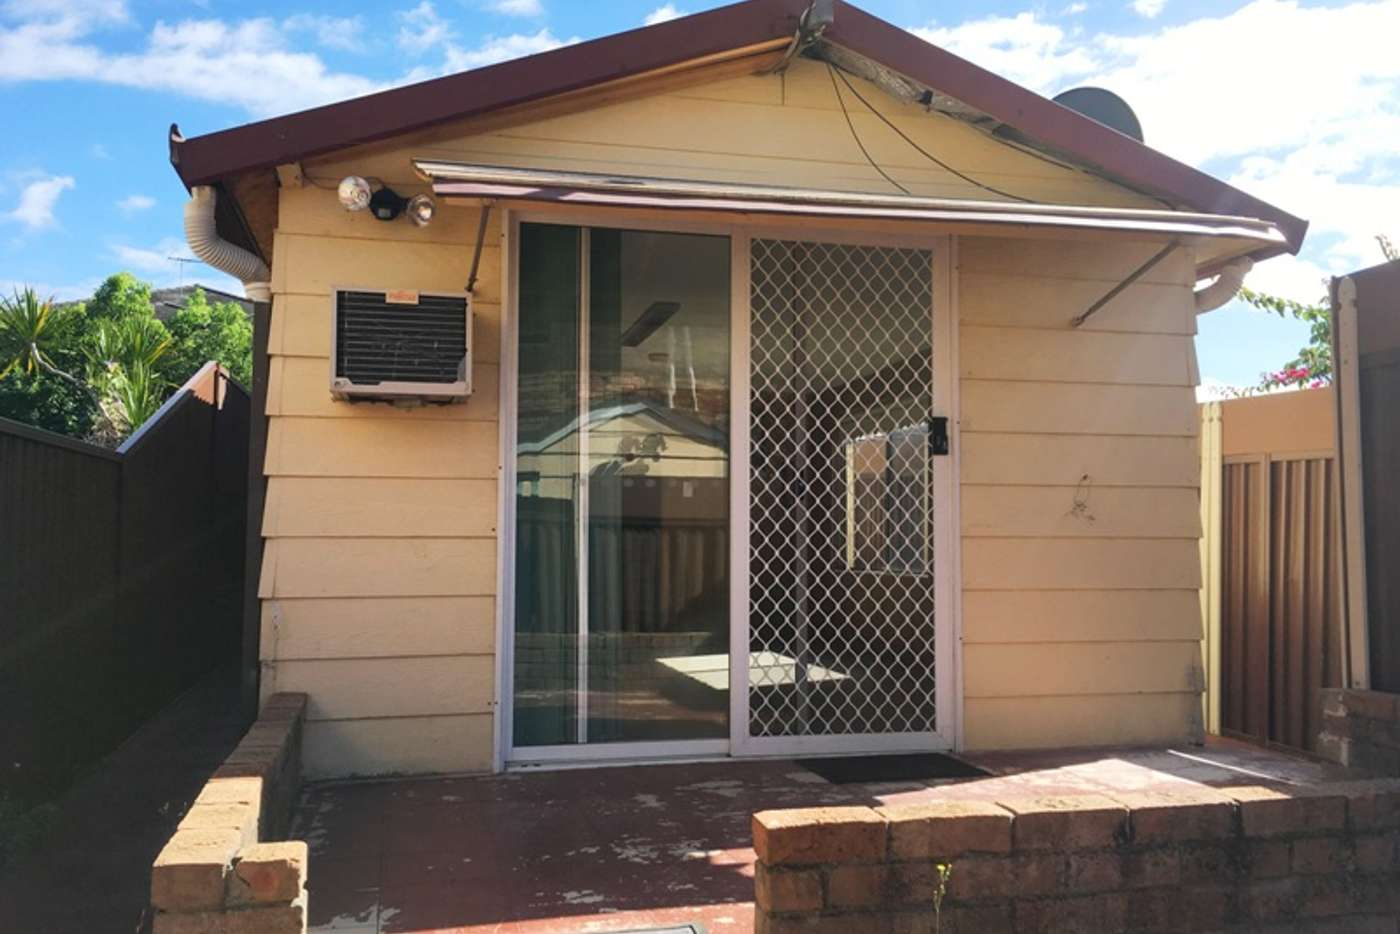 Main view of Homely house listing, 113a Guildford Rd, Guildford NSW 2161